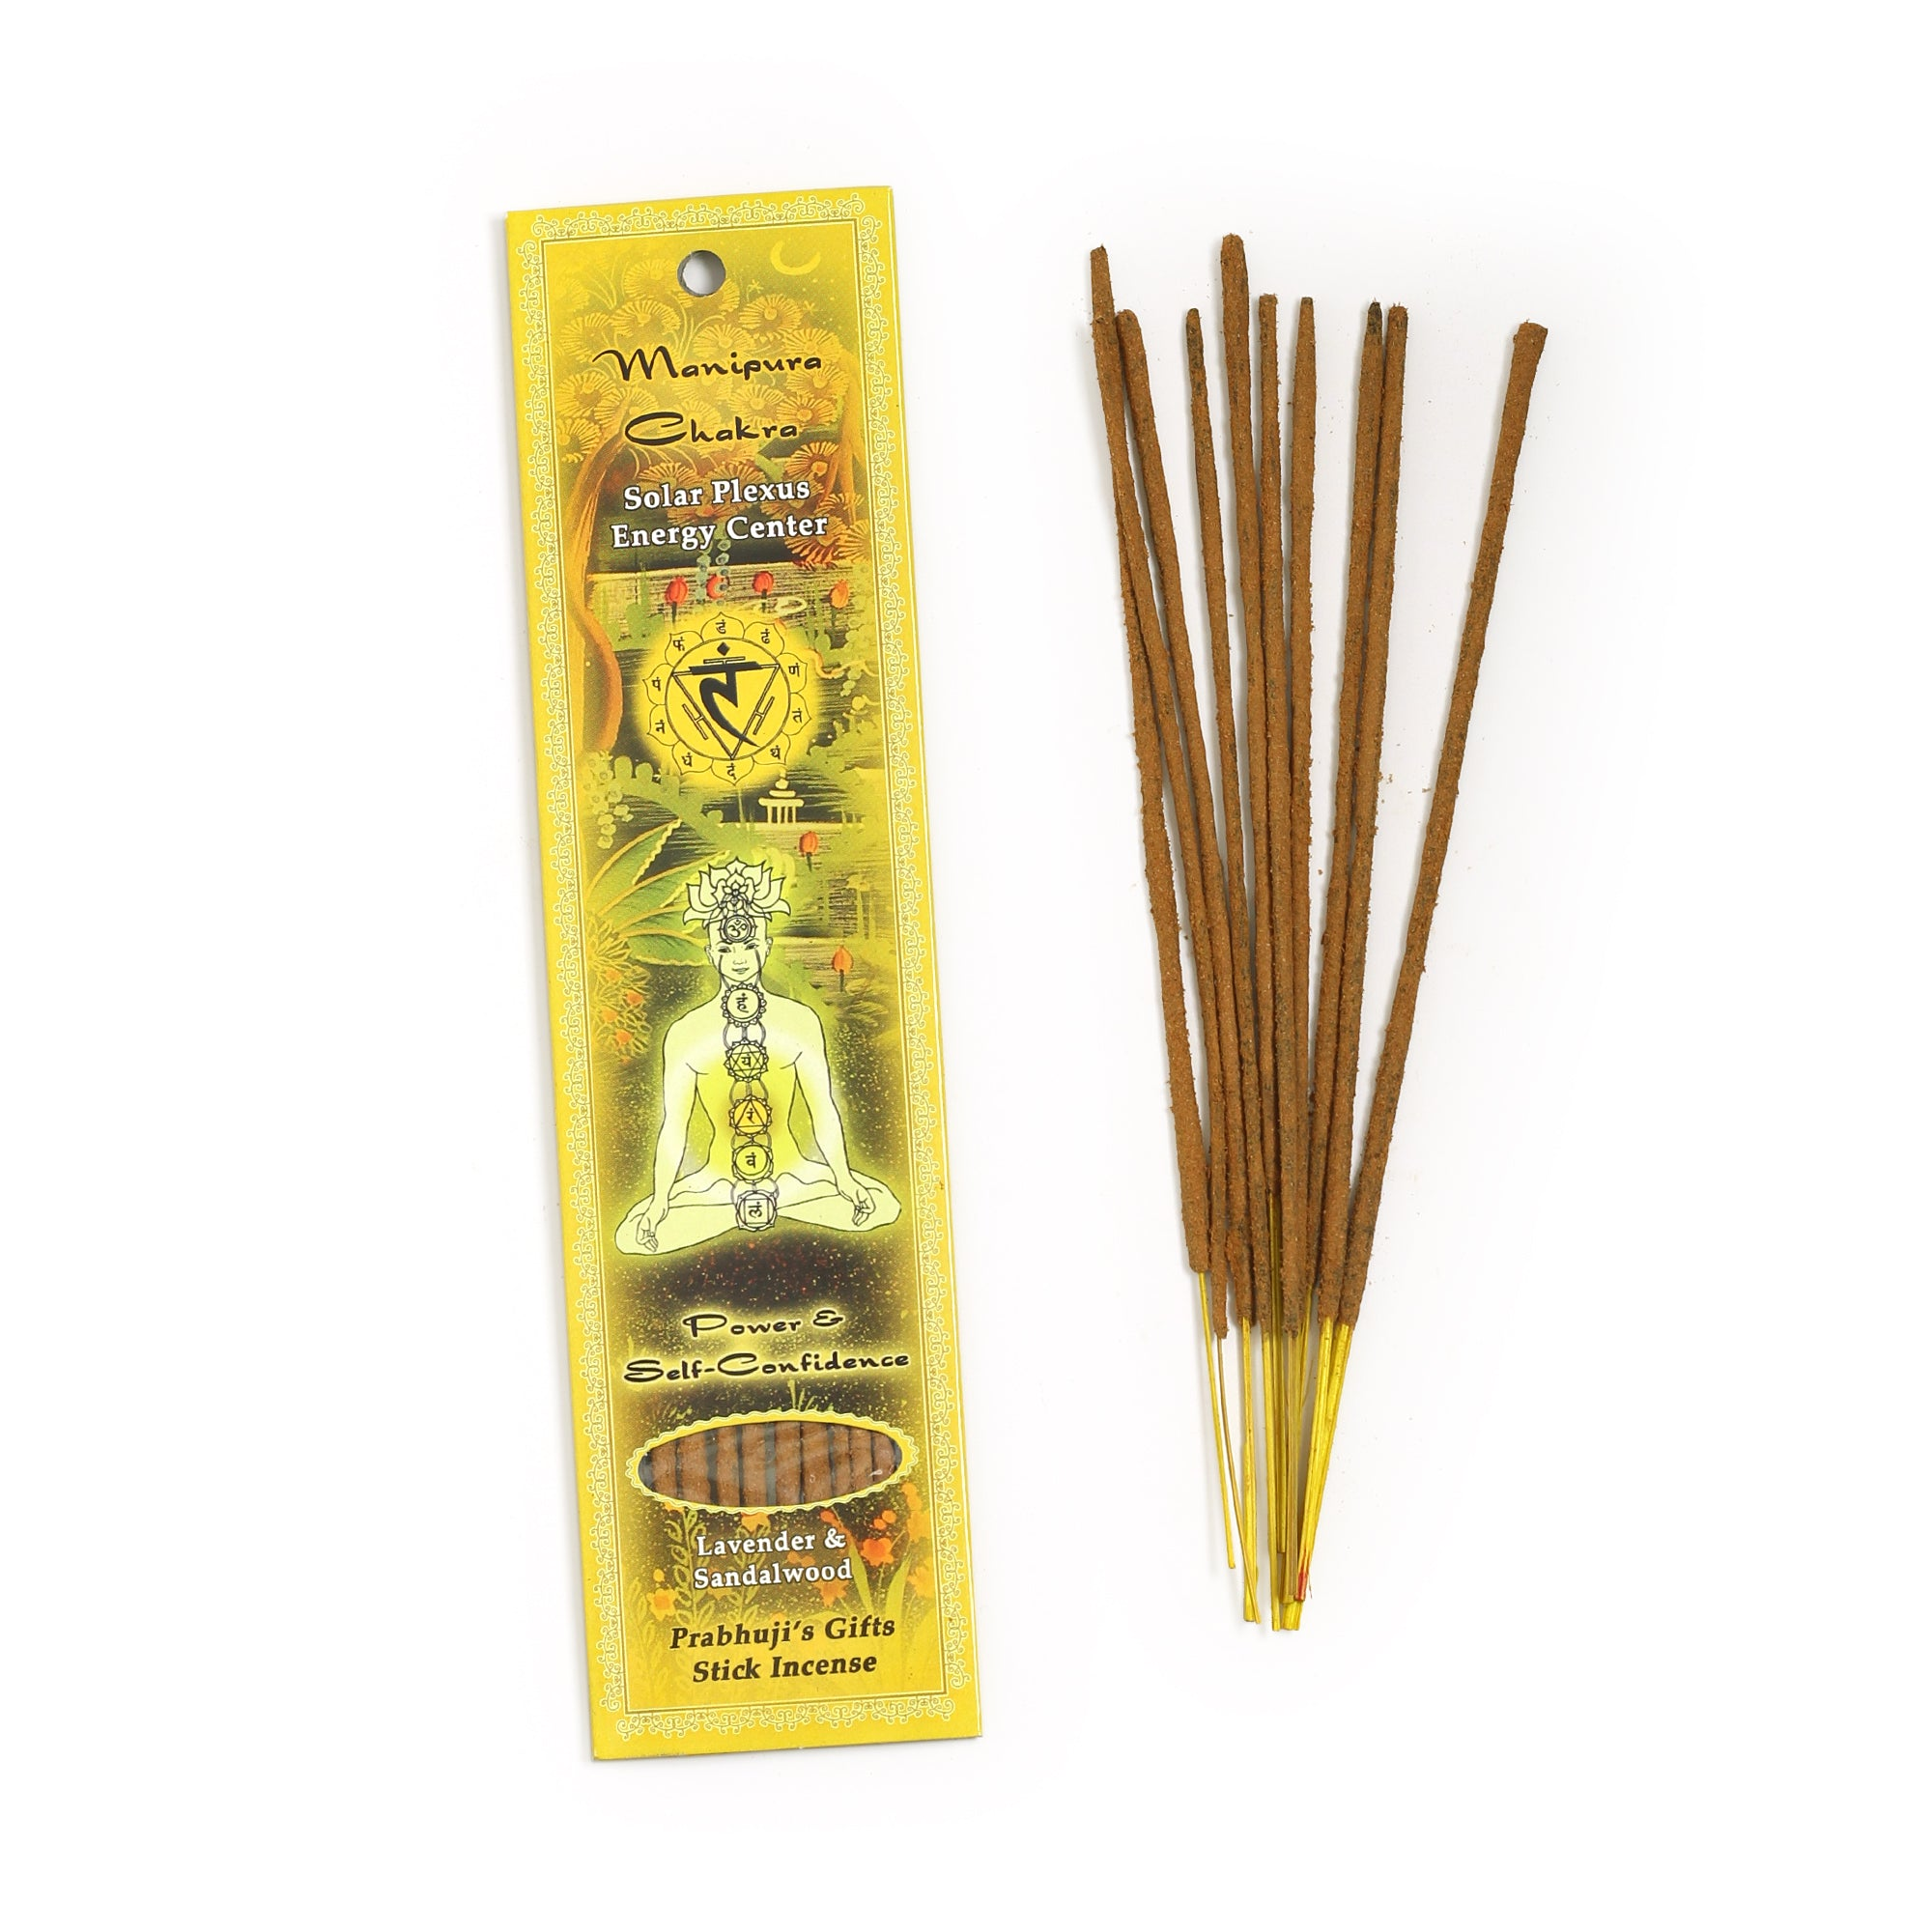 Manipura Incense Sticks Power And Self Confidence Wholesale And Retail By Prabhuji S Gifts Prabhuji S Gifts